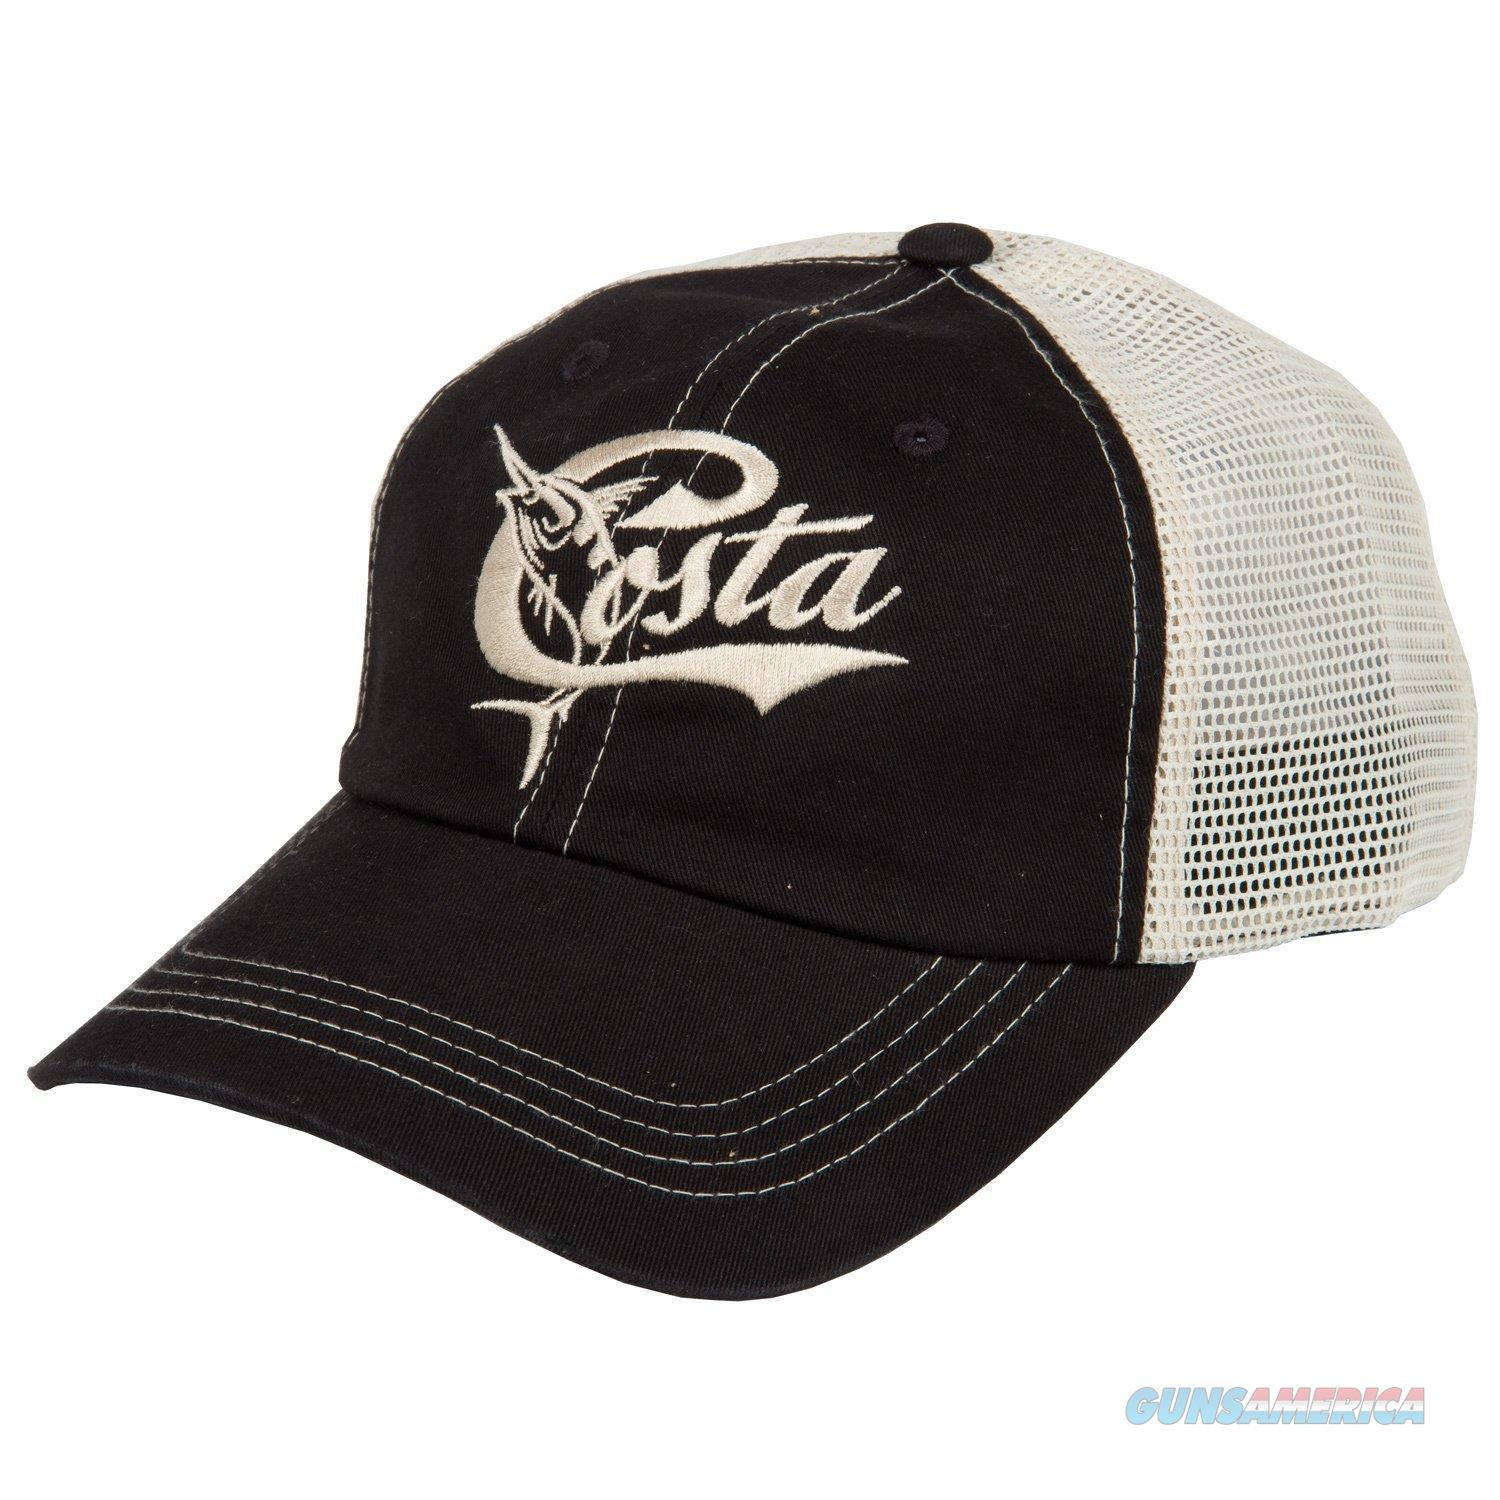 49897156fdb Costa Retro Trucker Ball Cap Black Non-Guns   Hunting Clothing and  Equipment   Clothing